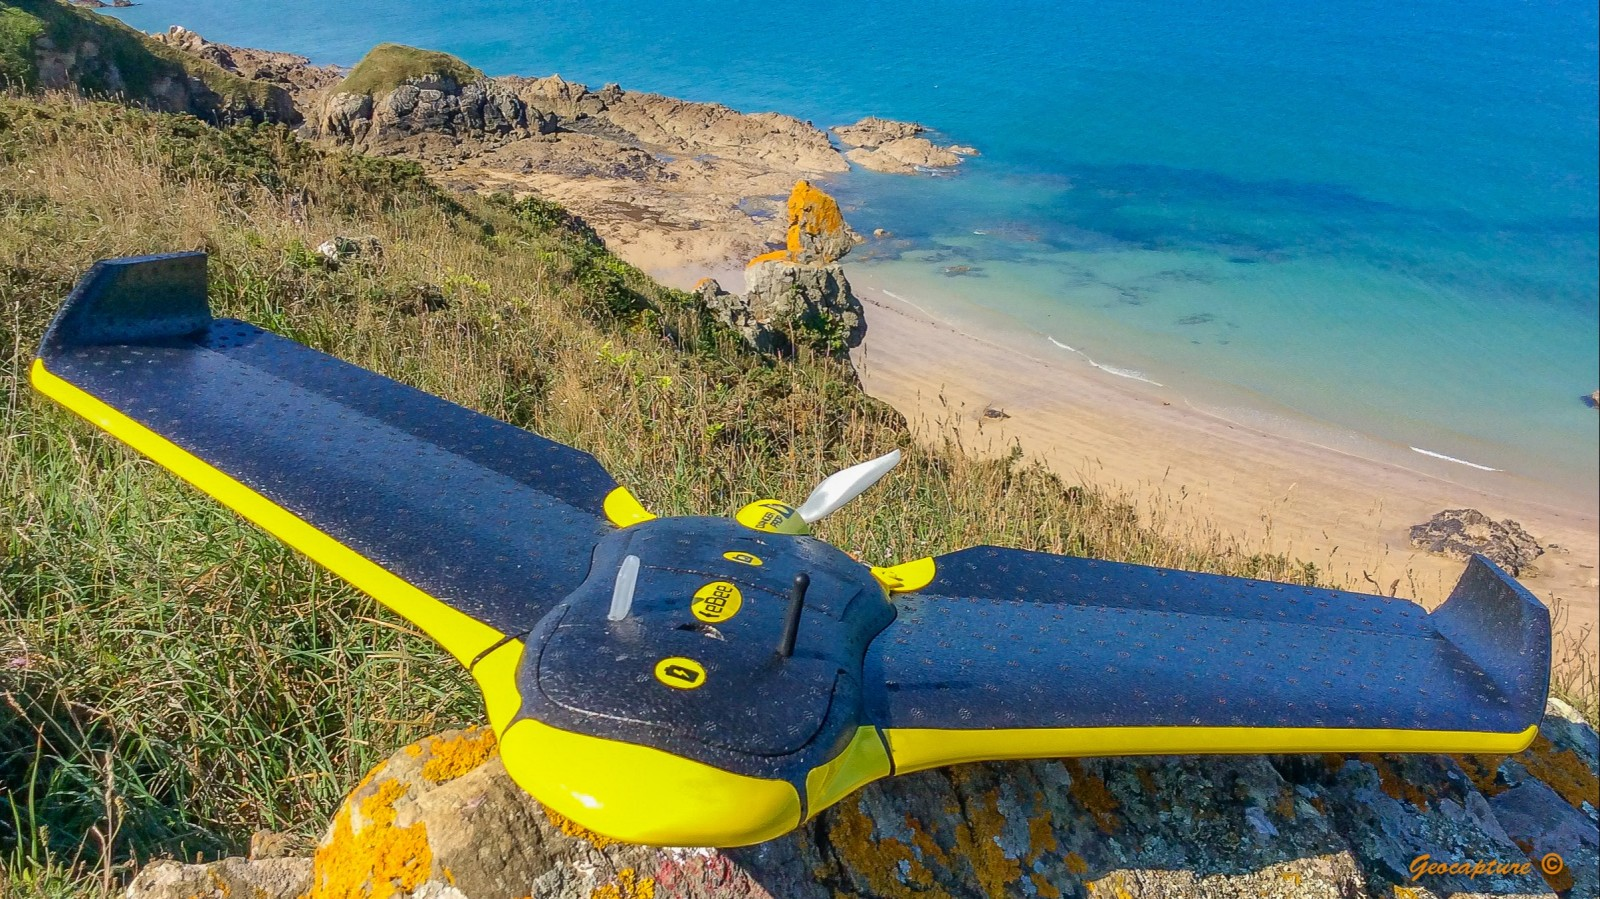 A Sensefly eBee drone ready for takeoff